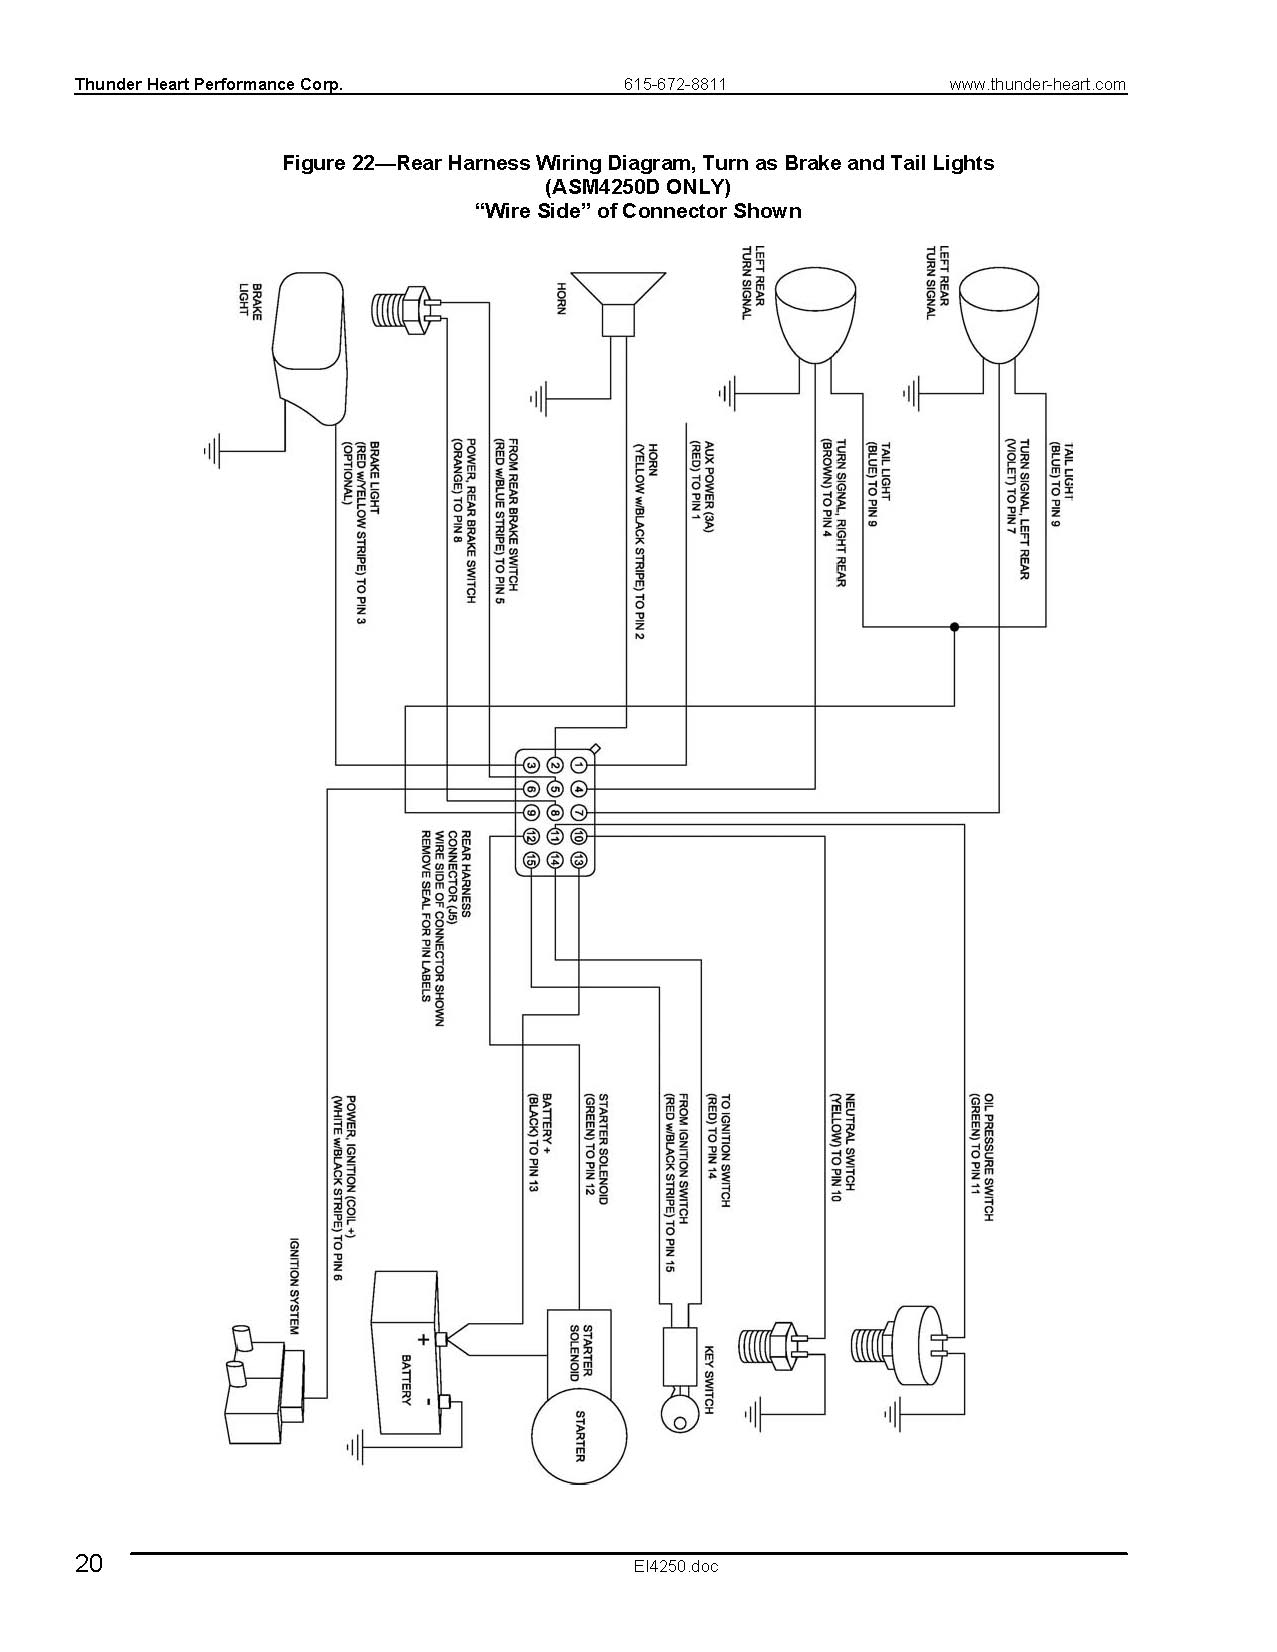 Thunderheart Wiring Diagram